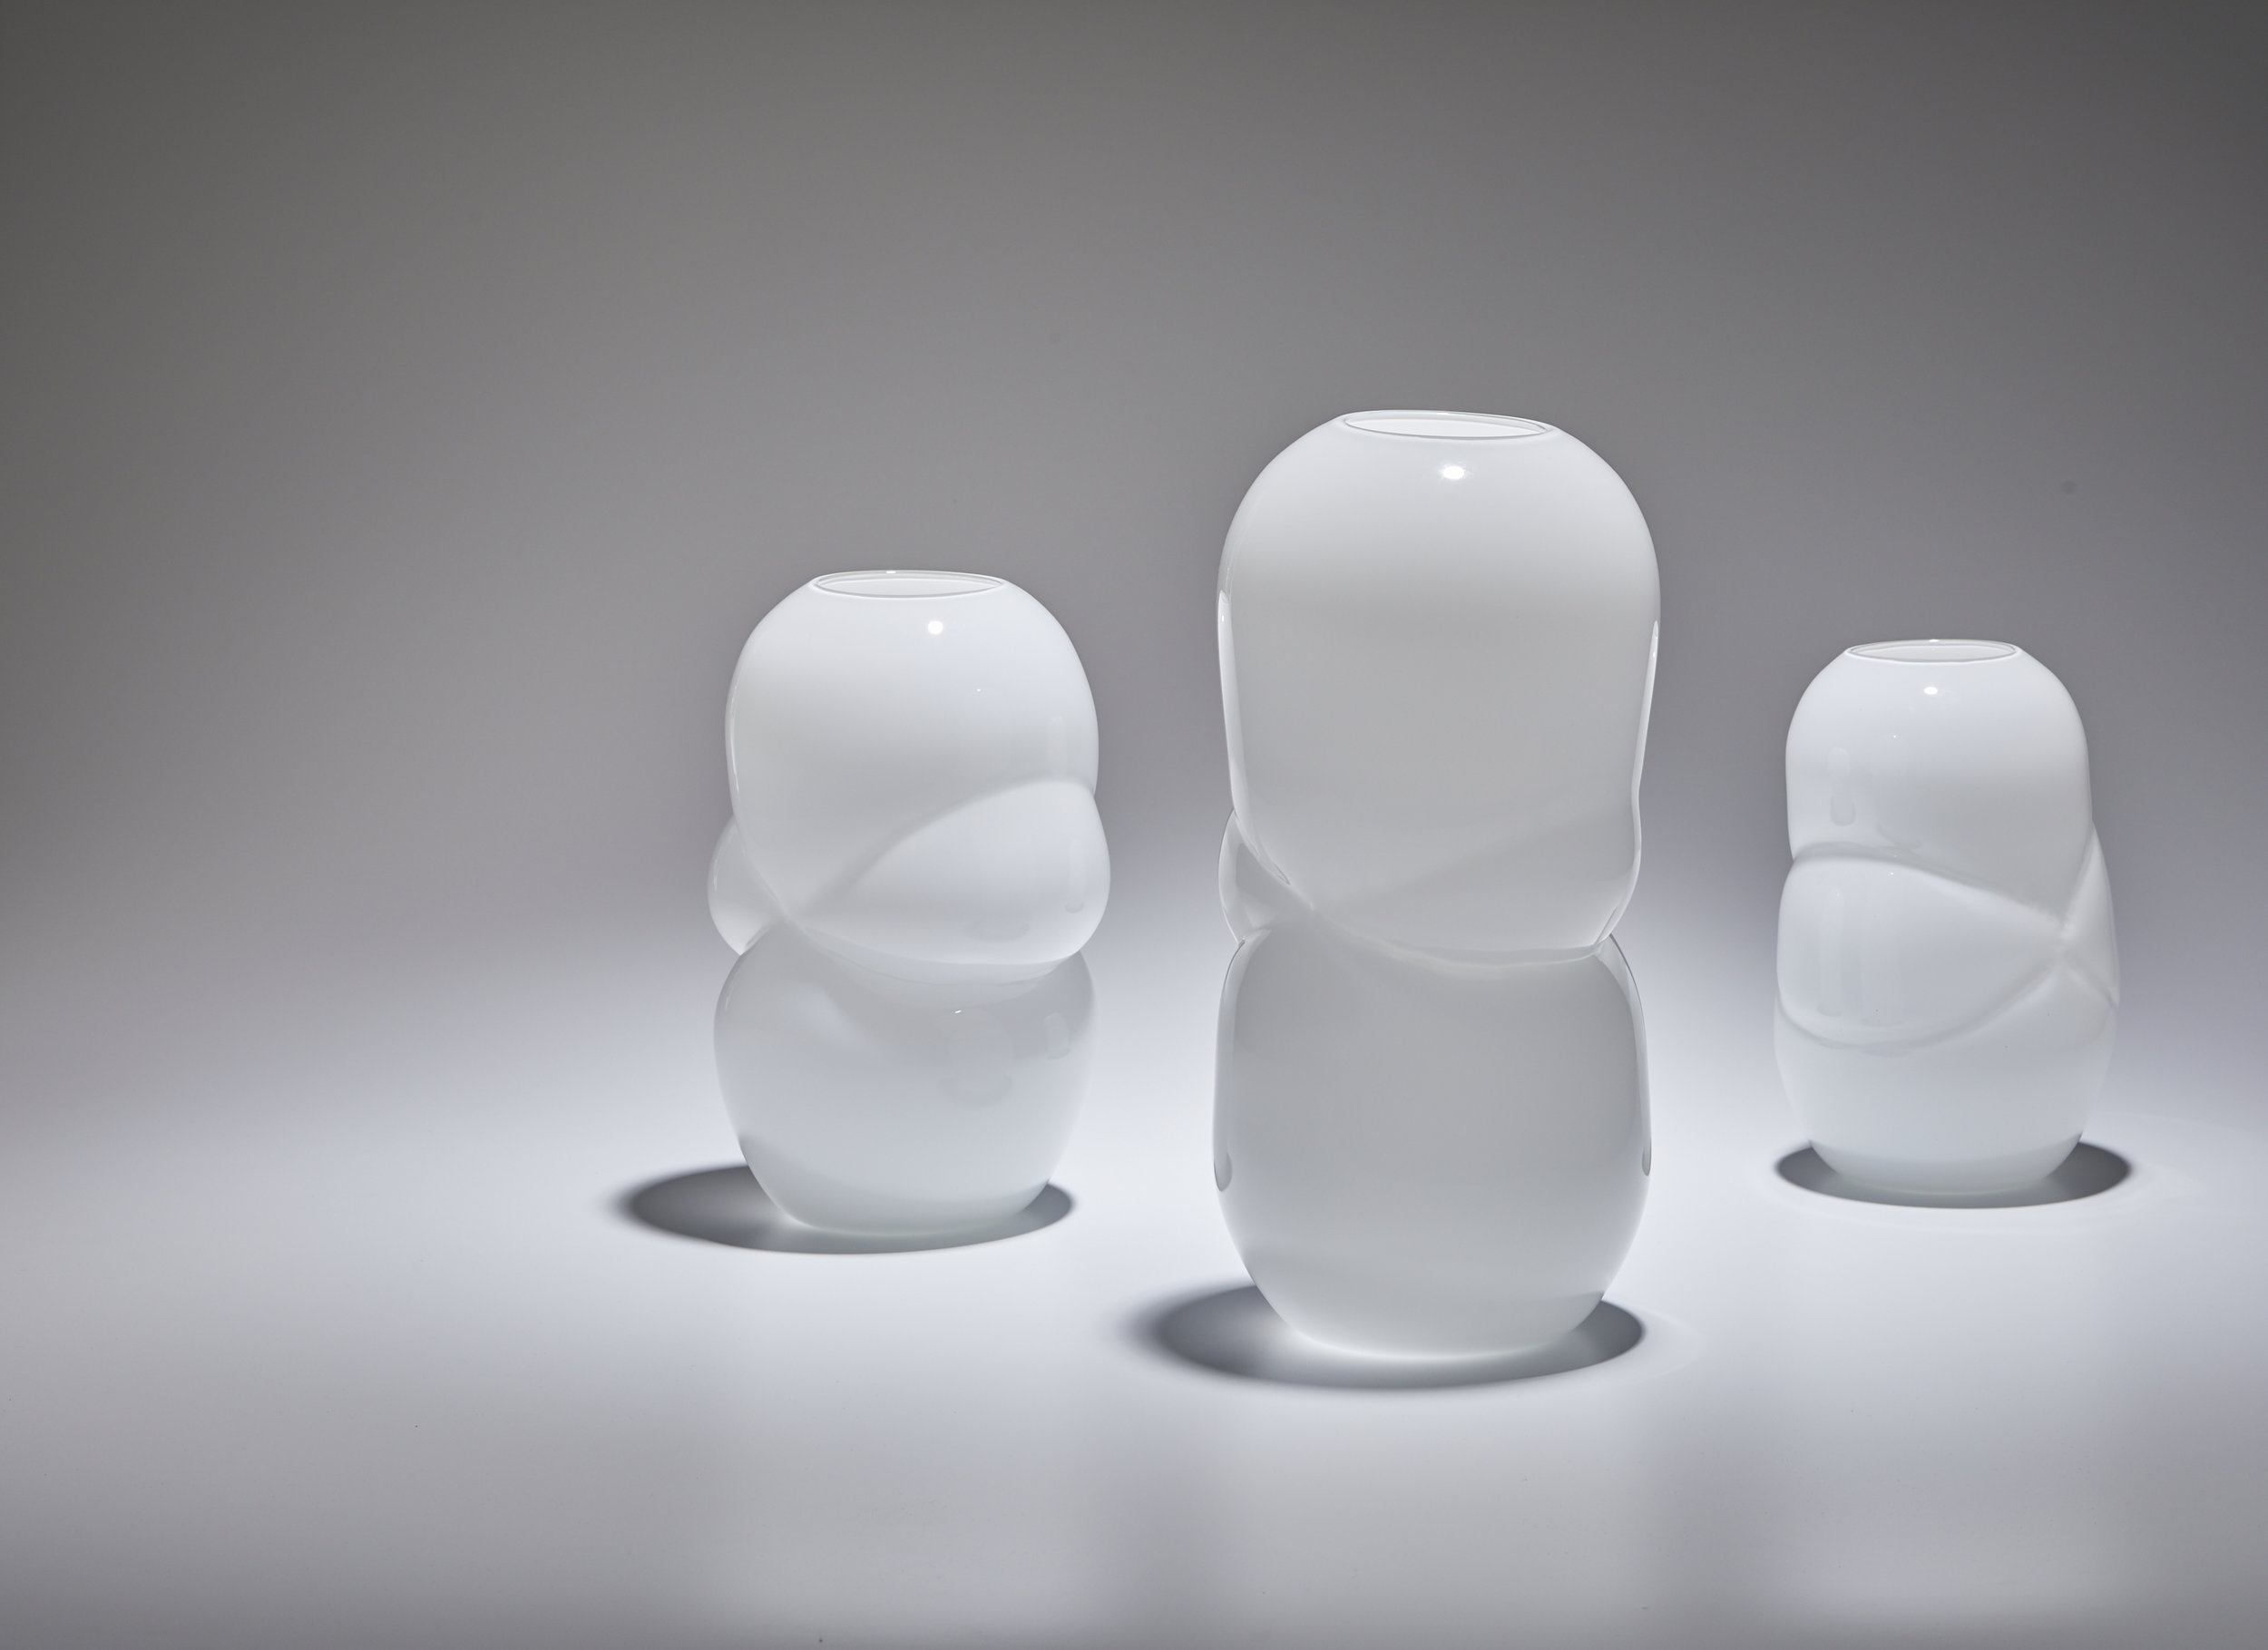 The White Cloud Vases. Handblown glass.